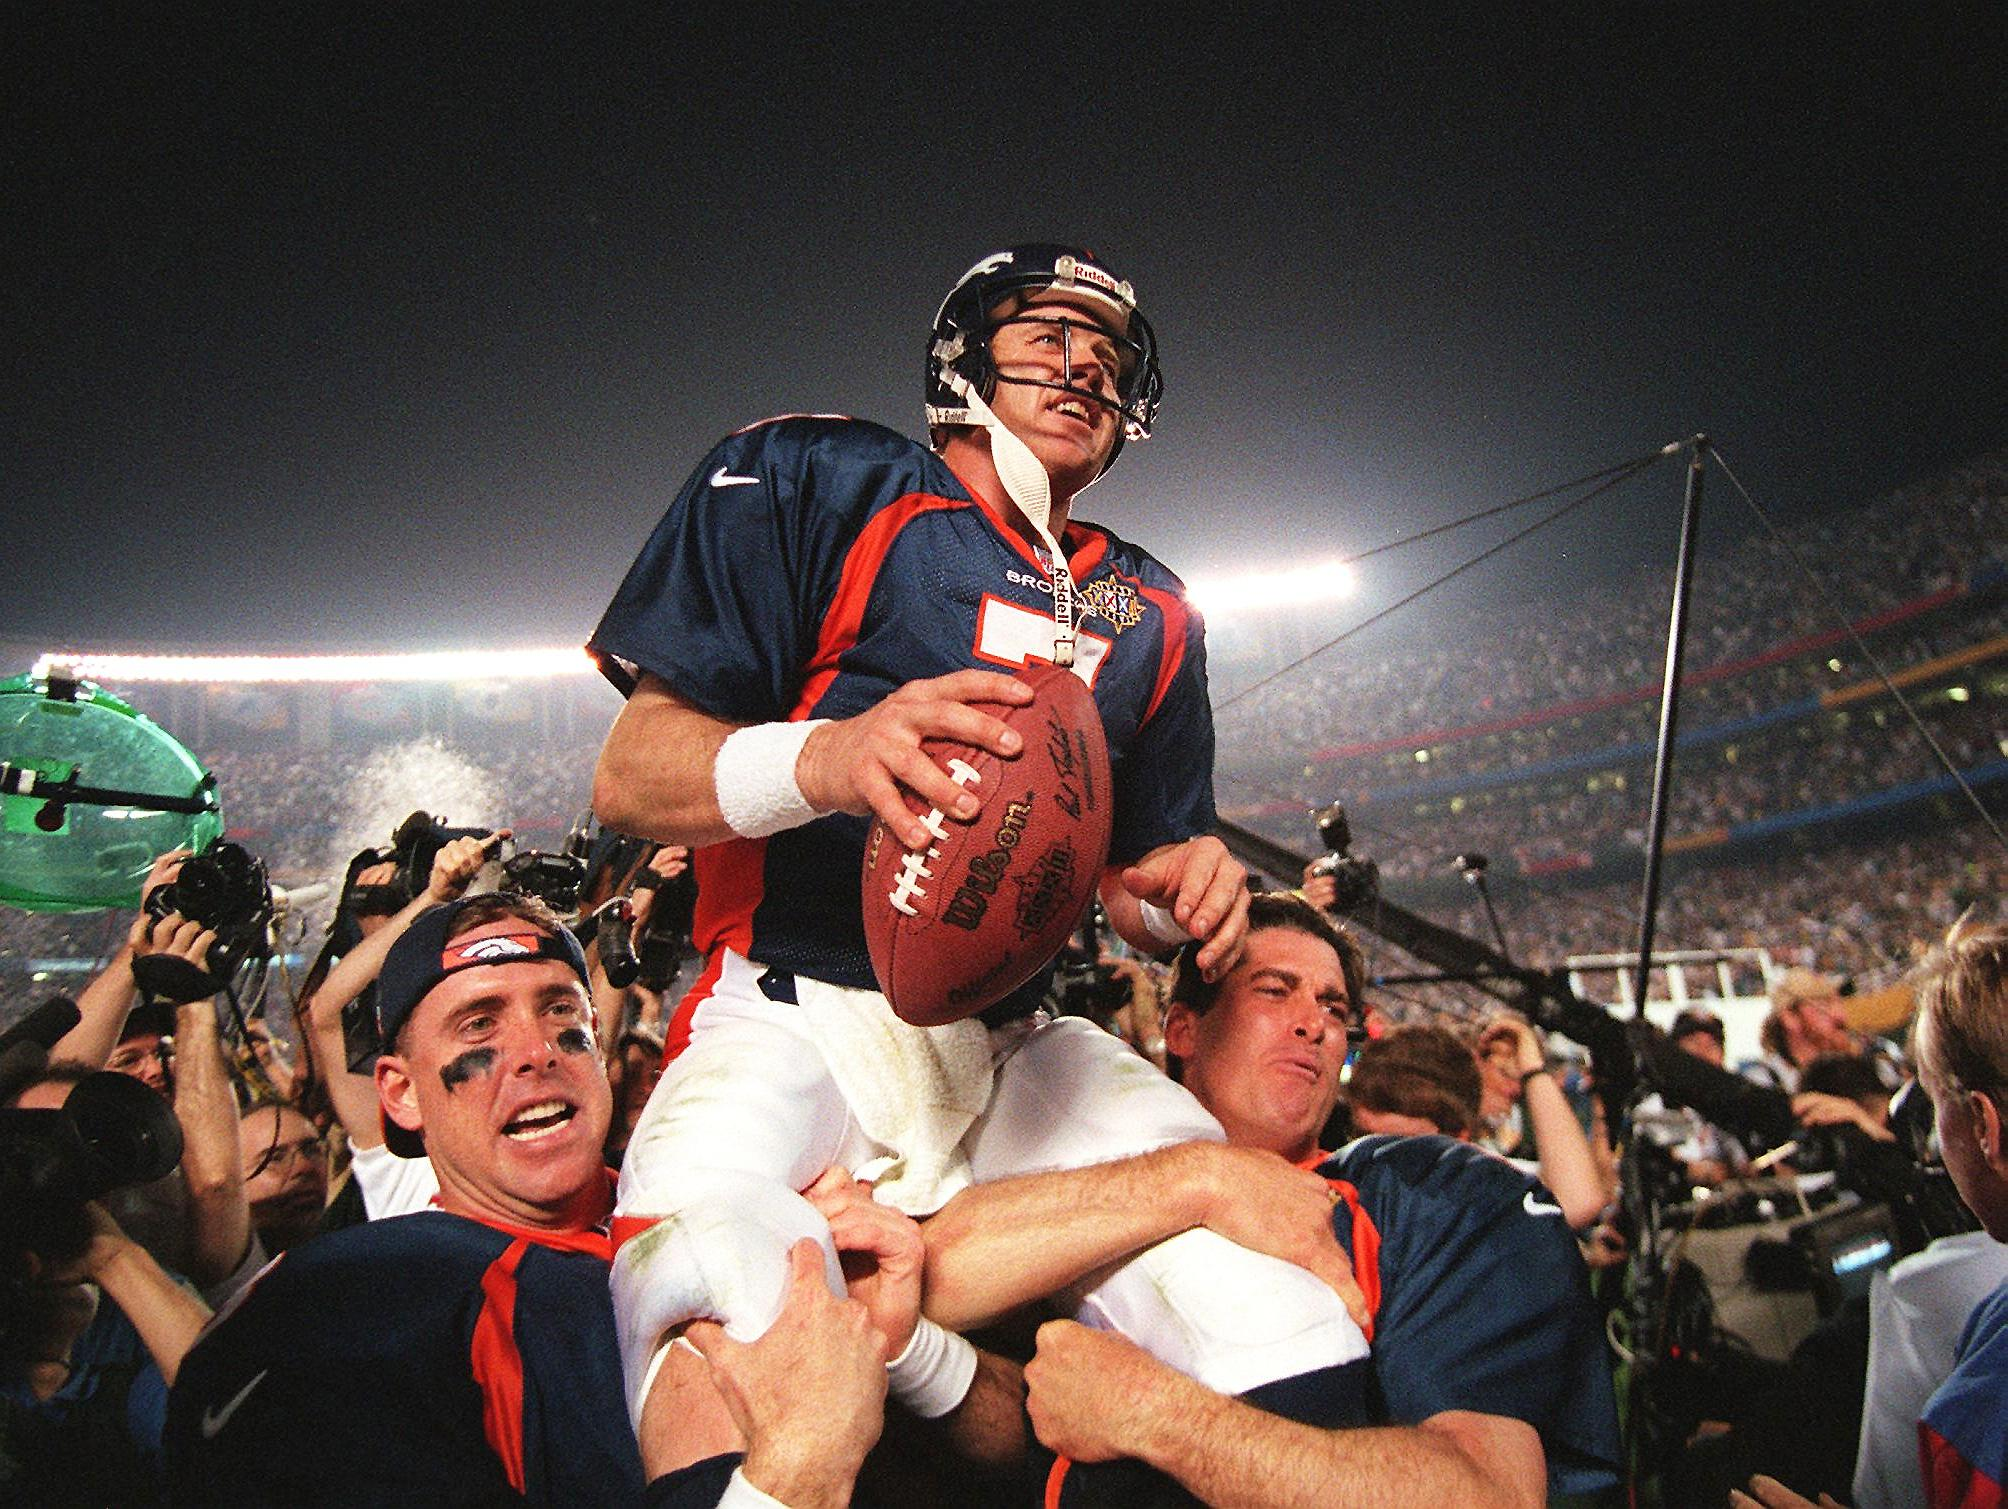 Denver Broncos quarterback John Elway (C) is carried by teammates Ed McCaffrey (L) and Bubby Brister (R) after the Broncos defeated the Green Bay Packers 31-24 to win Super Bowl XXXII in San Diego, CA 25 January. (credit: TIMOTHY A. CLARY/AFP/Getty Images)